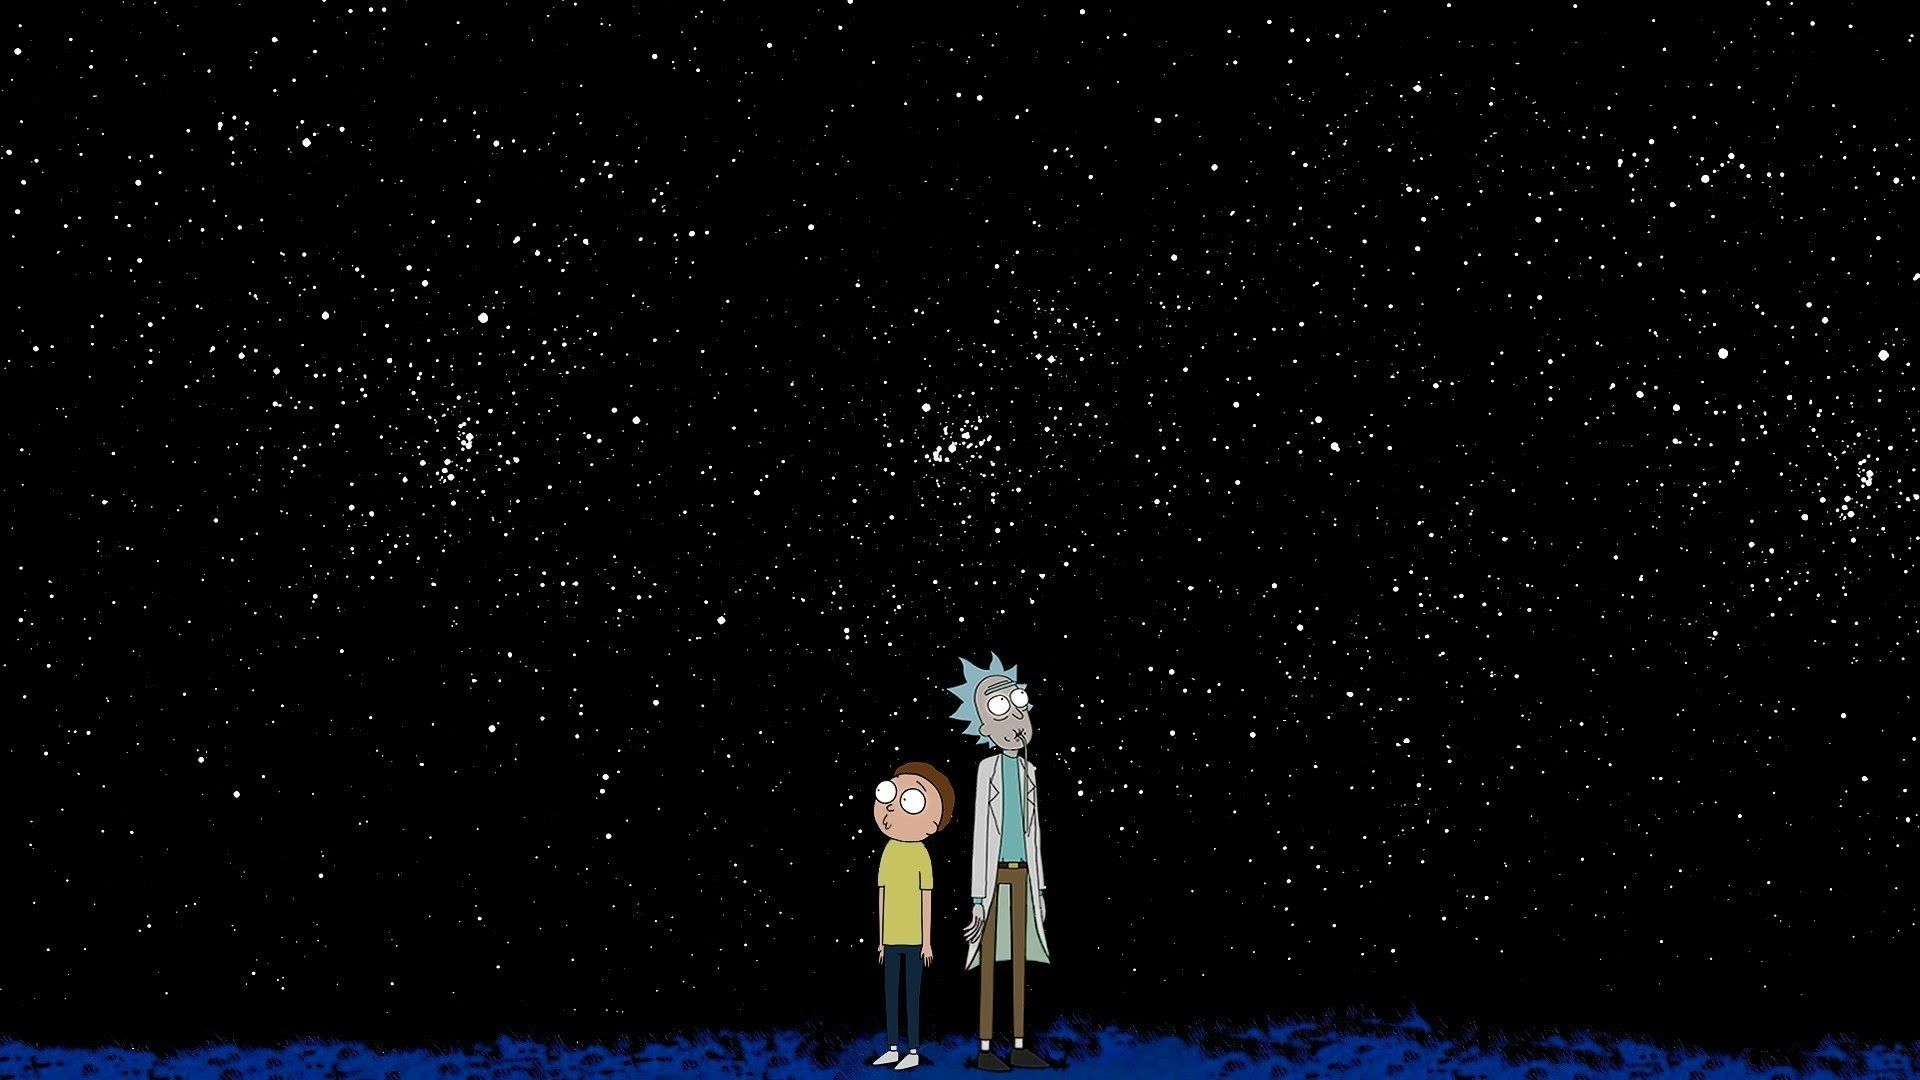 10 New Rick Morty Wallpaper Full Hd 1920 1080 For Pc Desktop Background Images Wallpapers Cartoon Wallpaper Rick And Morty